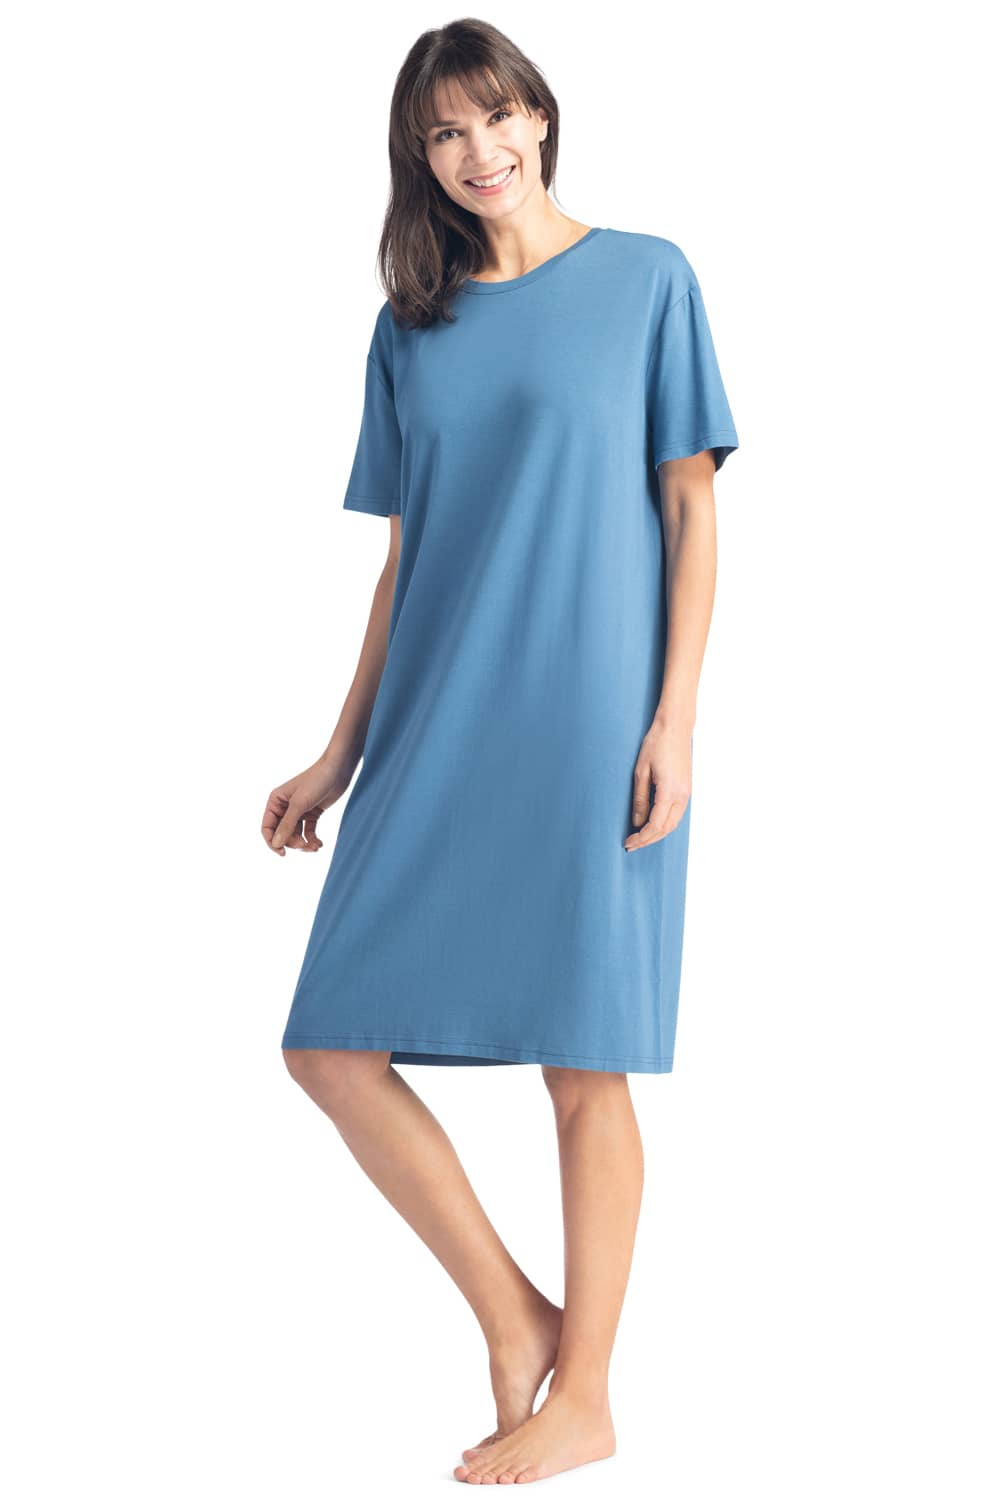 Women's EcoFabric™ Sleep Tee - Relaxed Fit - Fishers Finery